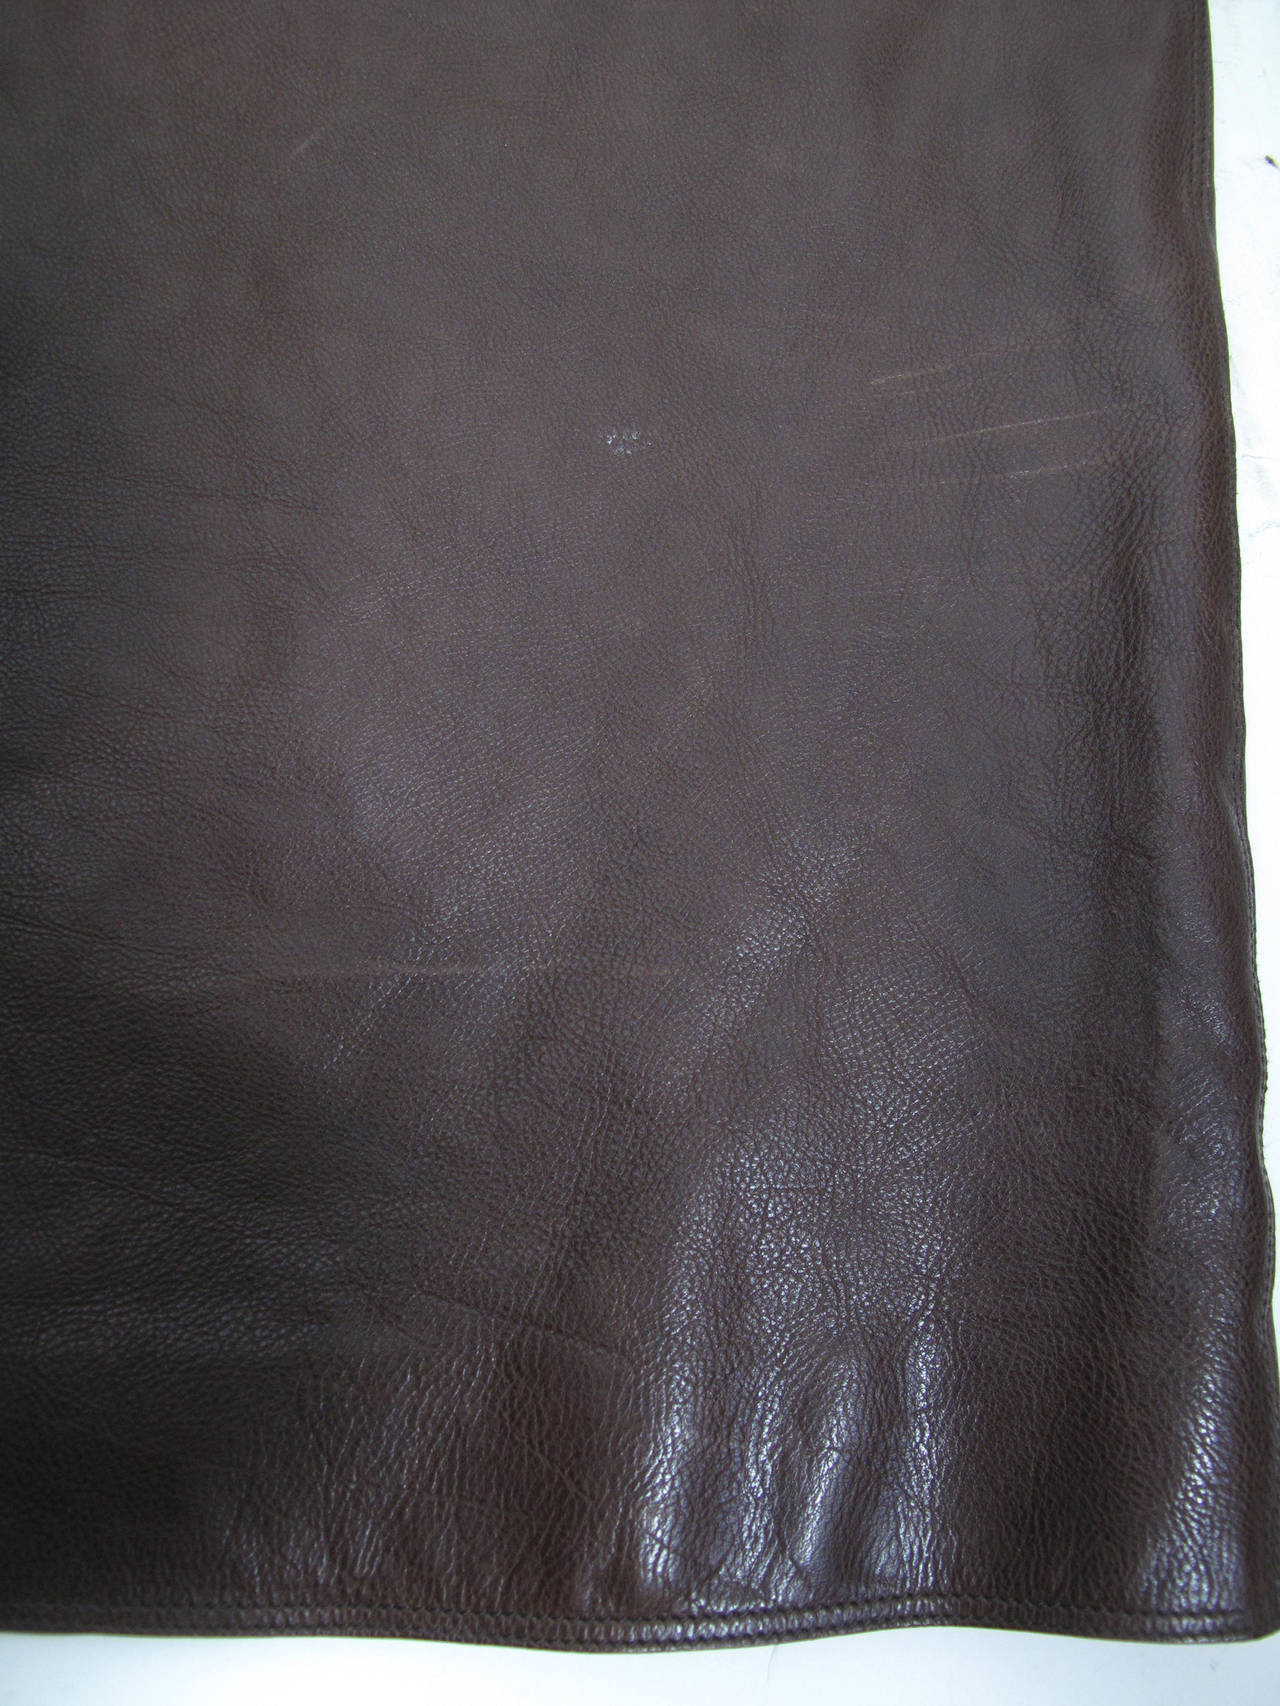 Hermes Rich Dark Brown Leather Wrap Skirt with Buckle 8